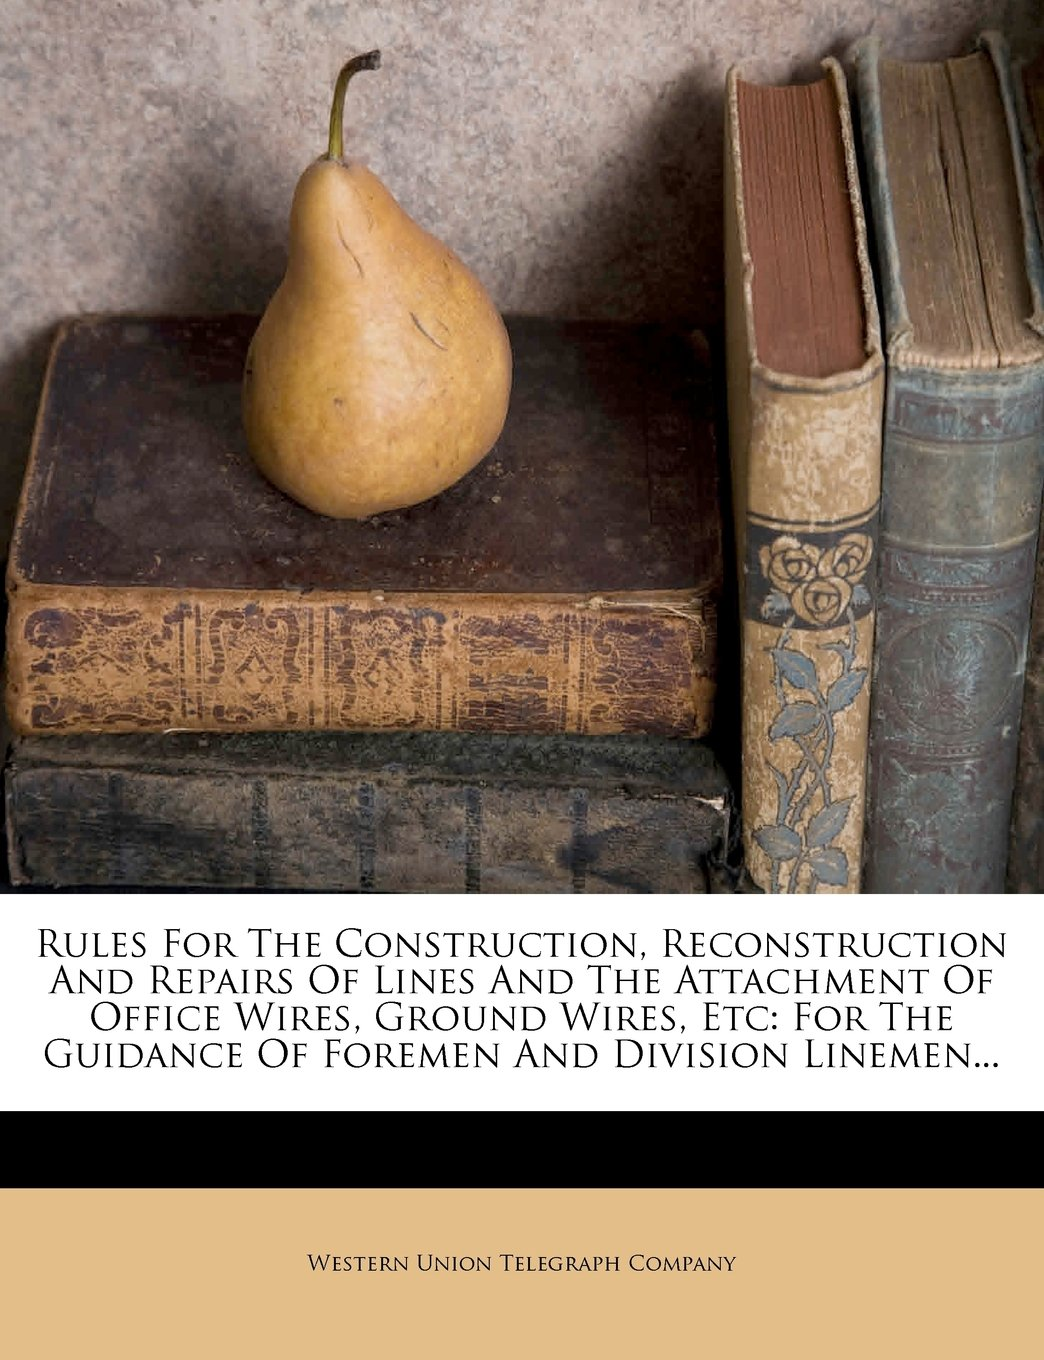 Download Rules For The Construction, Reconstruction And Repairs Of Lines And The Attachment Of Office Wires, Ground Wires, Etc: For The Guidance Of Foremen And Division Linemen... ebook